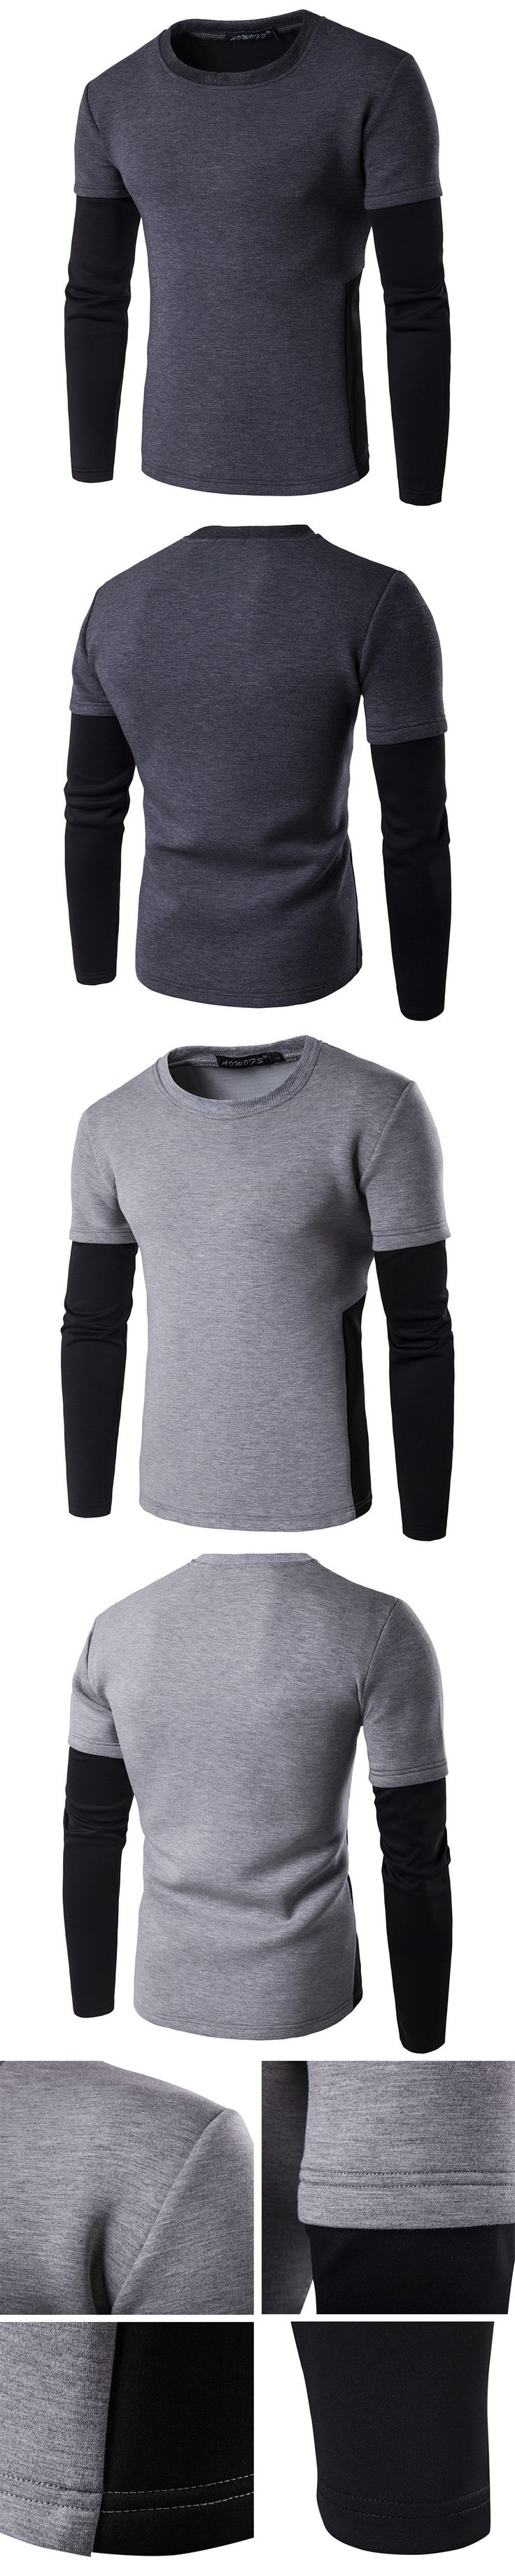 New Men Pullover Sweatshirts Winter Casual Patchwork Contrast Color Tracksuit Street Male False Two Piece grey Sweatshirt Tops